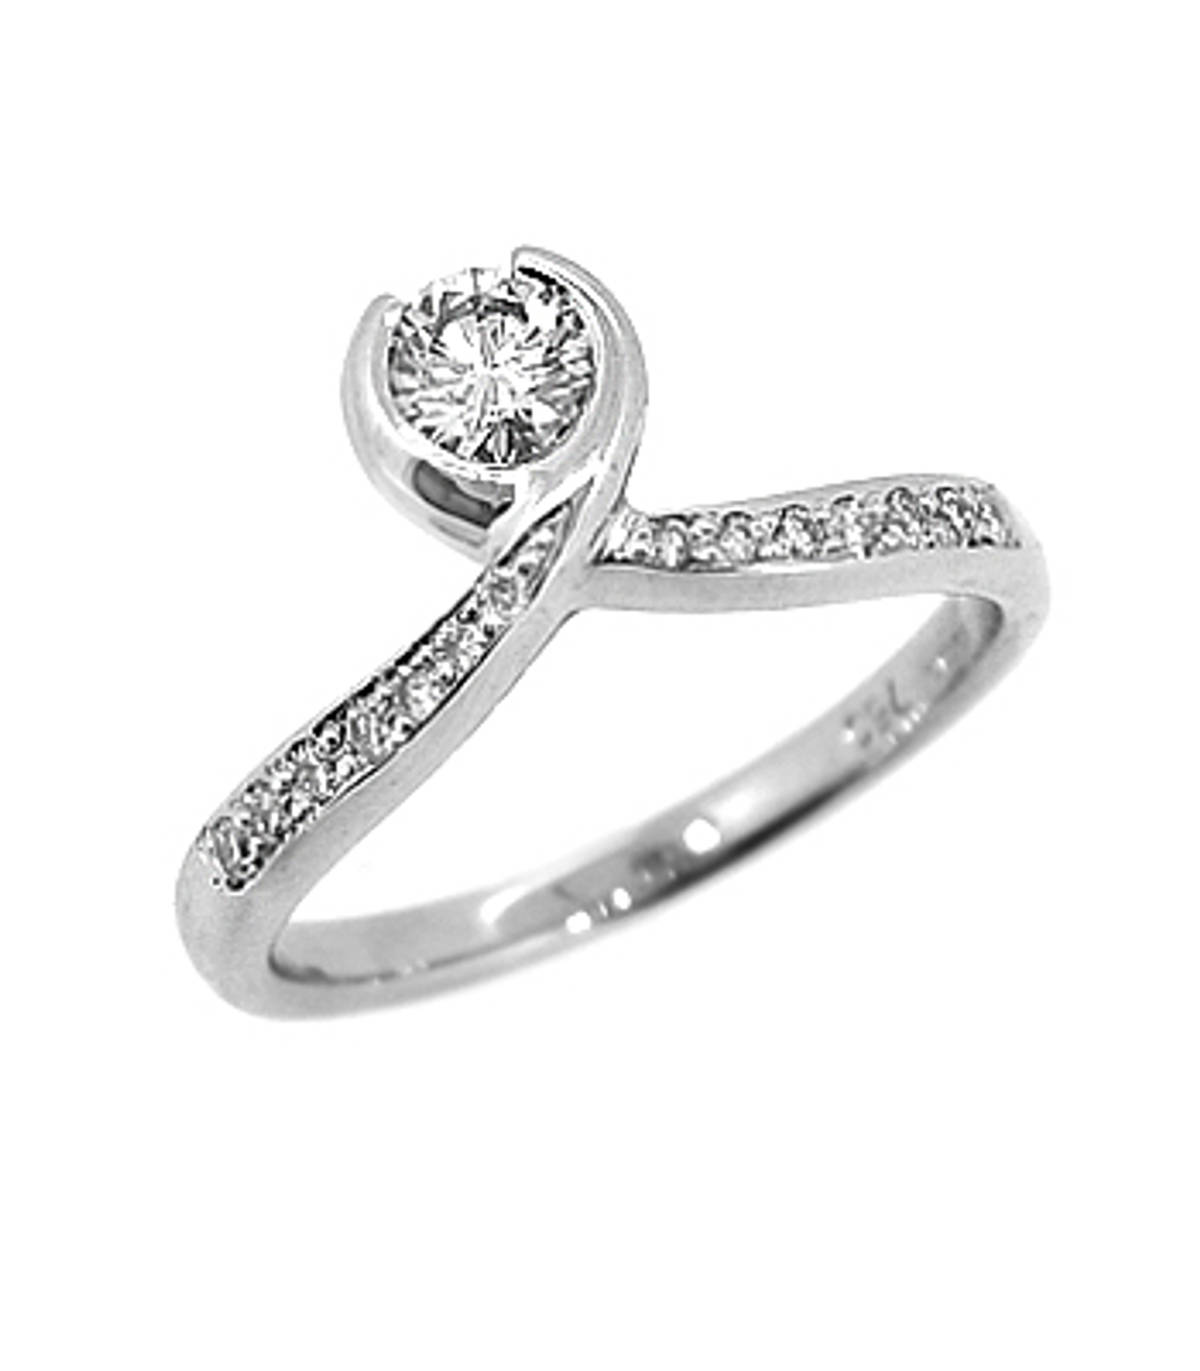 DR74207Single stone solitaire ring with diamond shouldersPictured item:  0.25ct/0.10cts brilliant cut diamond set in 18k white gold